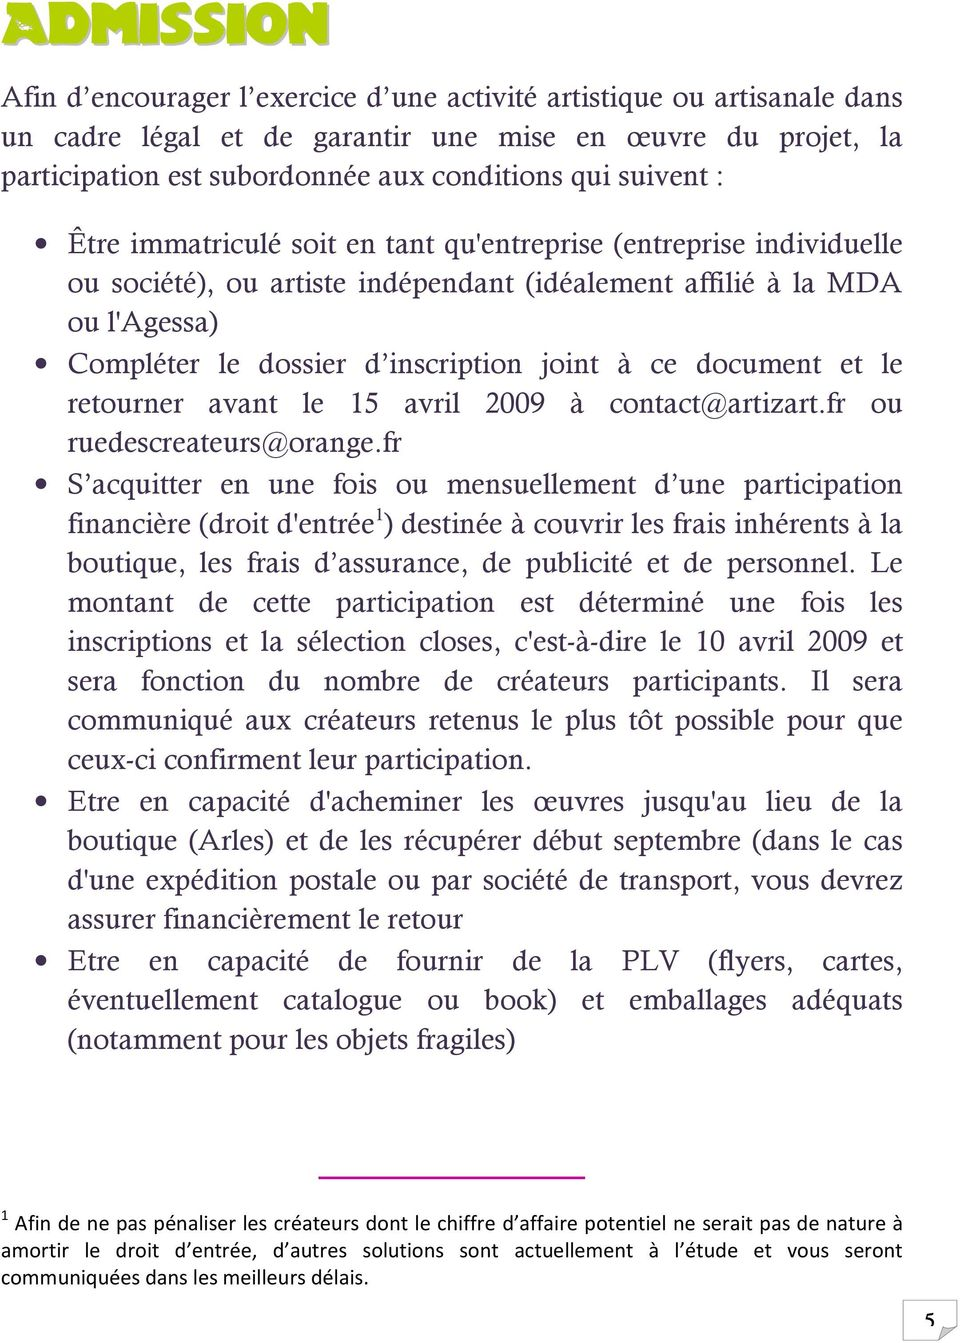 ce document et le retourner avant le 15 avril 2009 à contact@artizart.fr ou ruedescreateurs@orange.